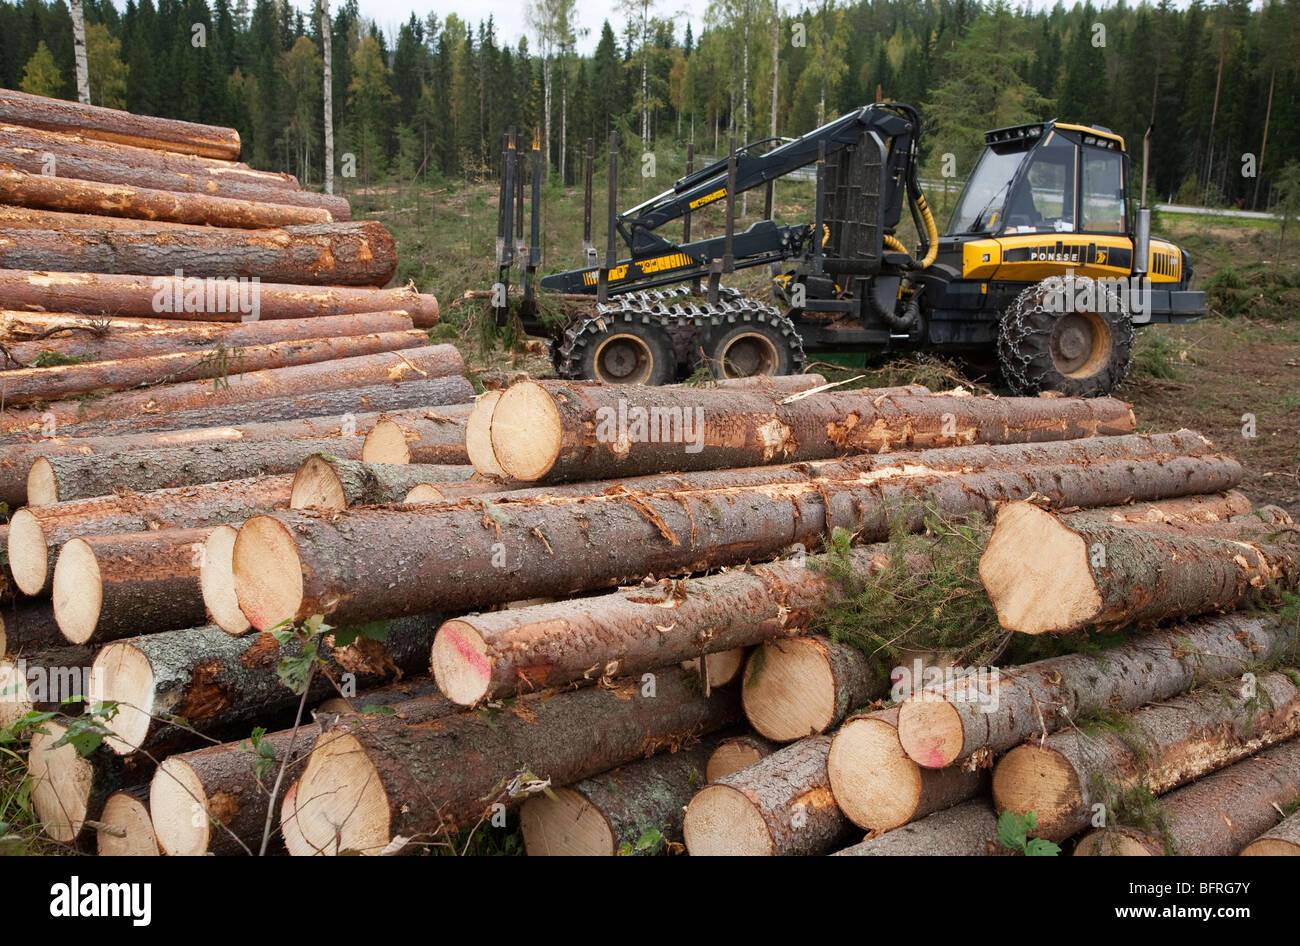 Pile of pine ( pinus sylvestris ) and spruce ( picea abies ) logs and Finnish Ponsse Elk forwarder , Finland - Stock Image